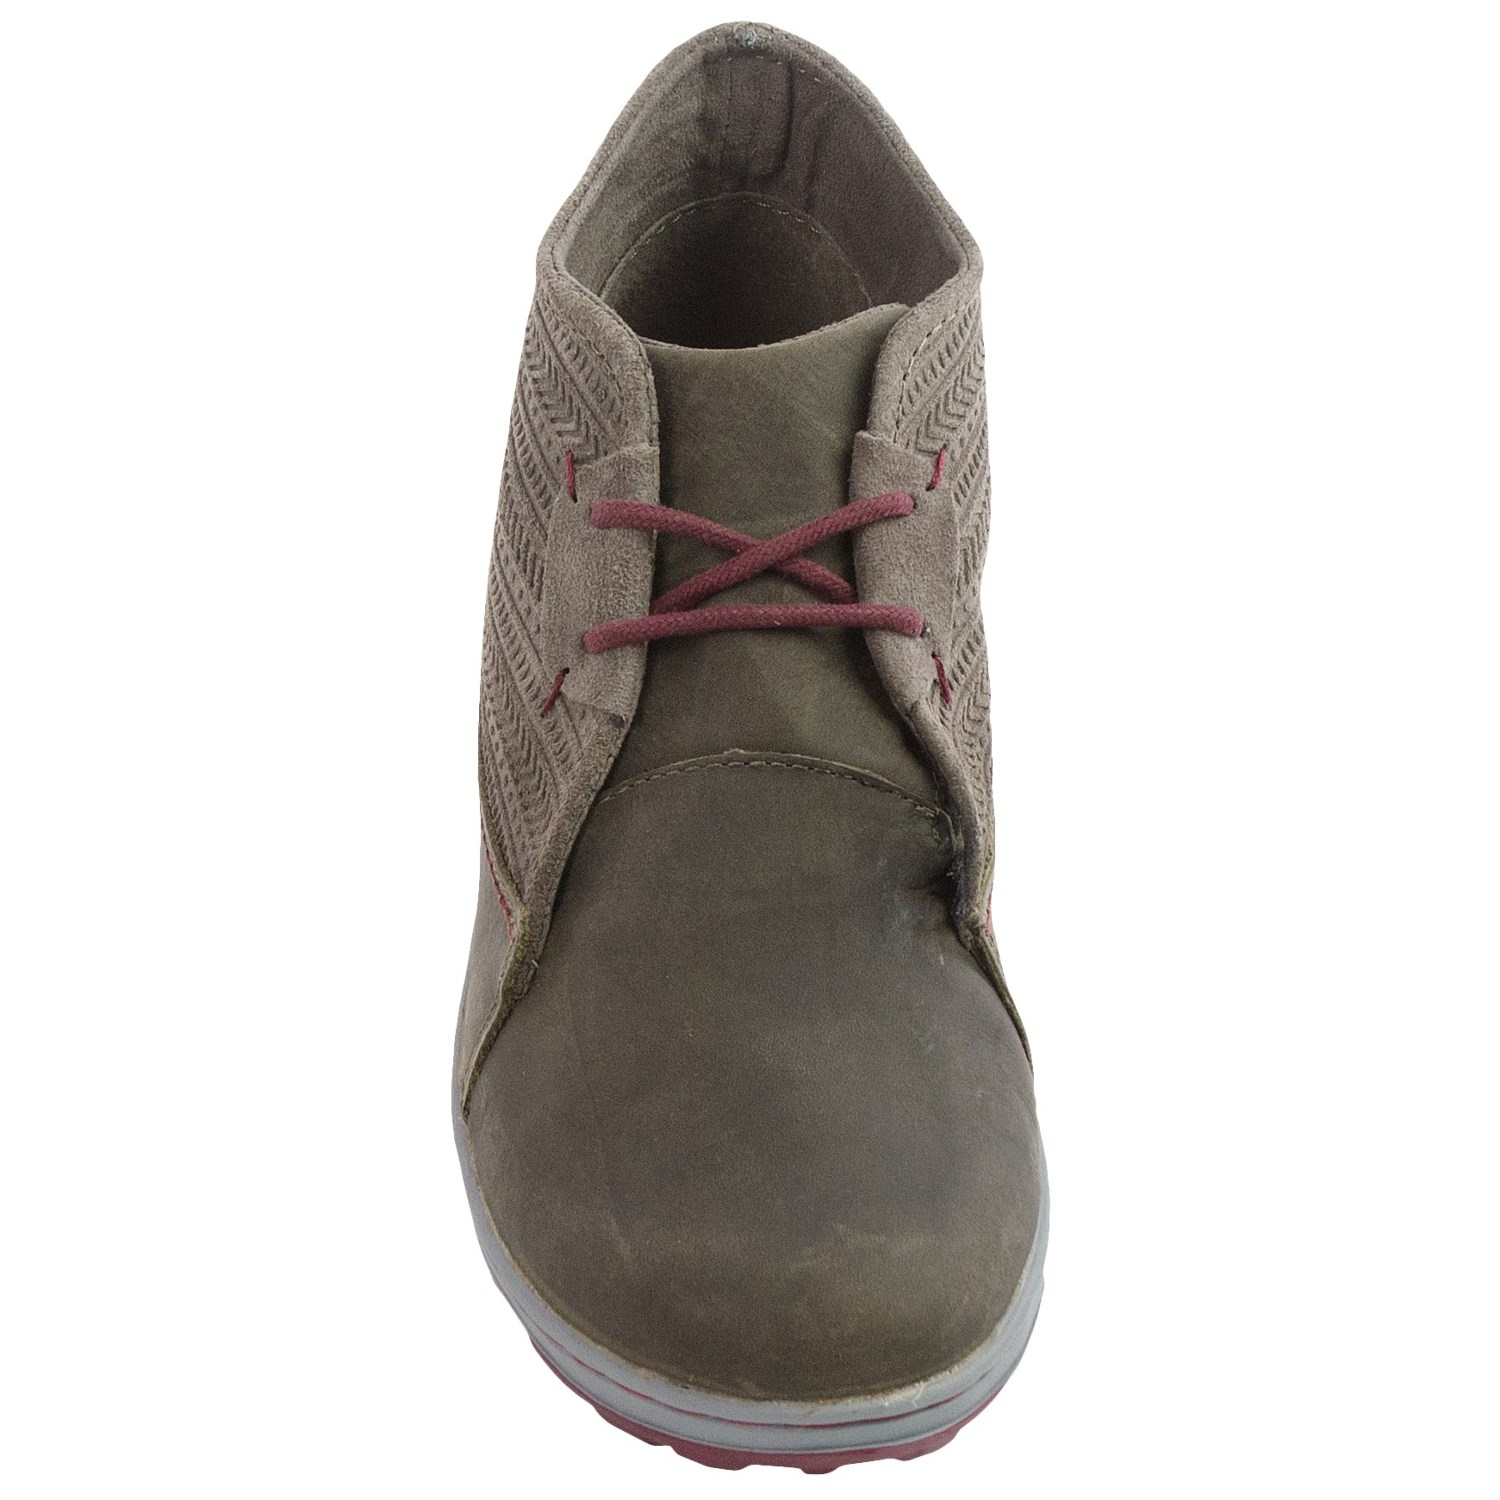 Buy UGG Australia Women's Classic Tall and other Shoes at shopnow-62mfbrnp.ga Our wide selection is eligible for free shipping and free returns.